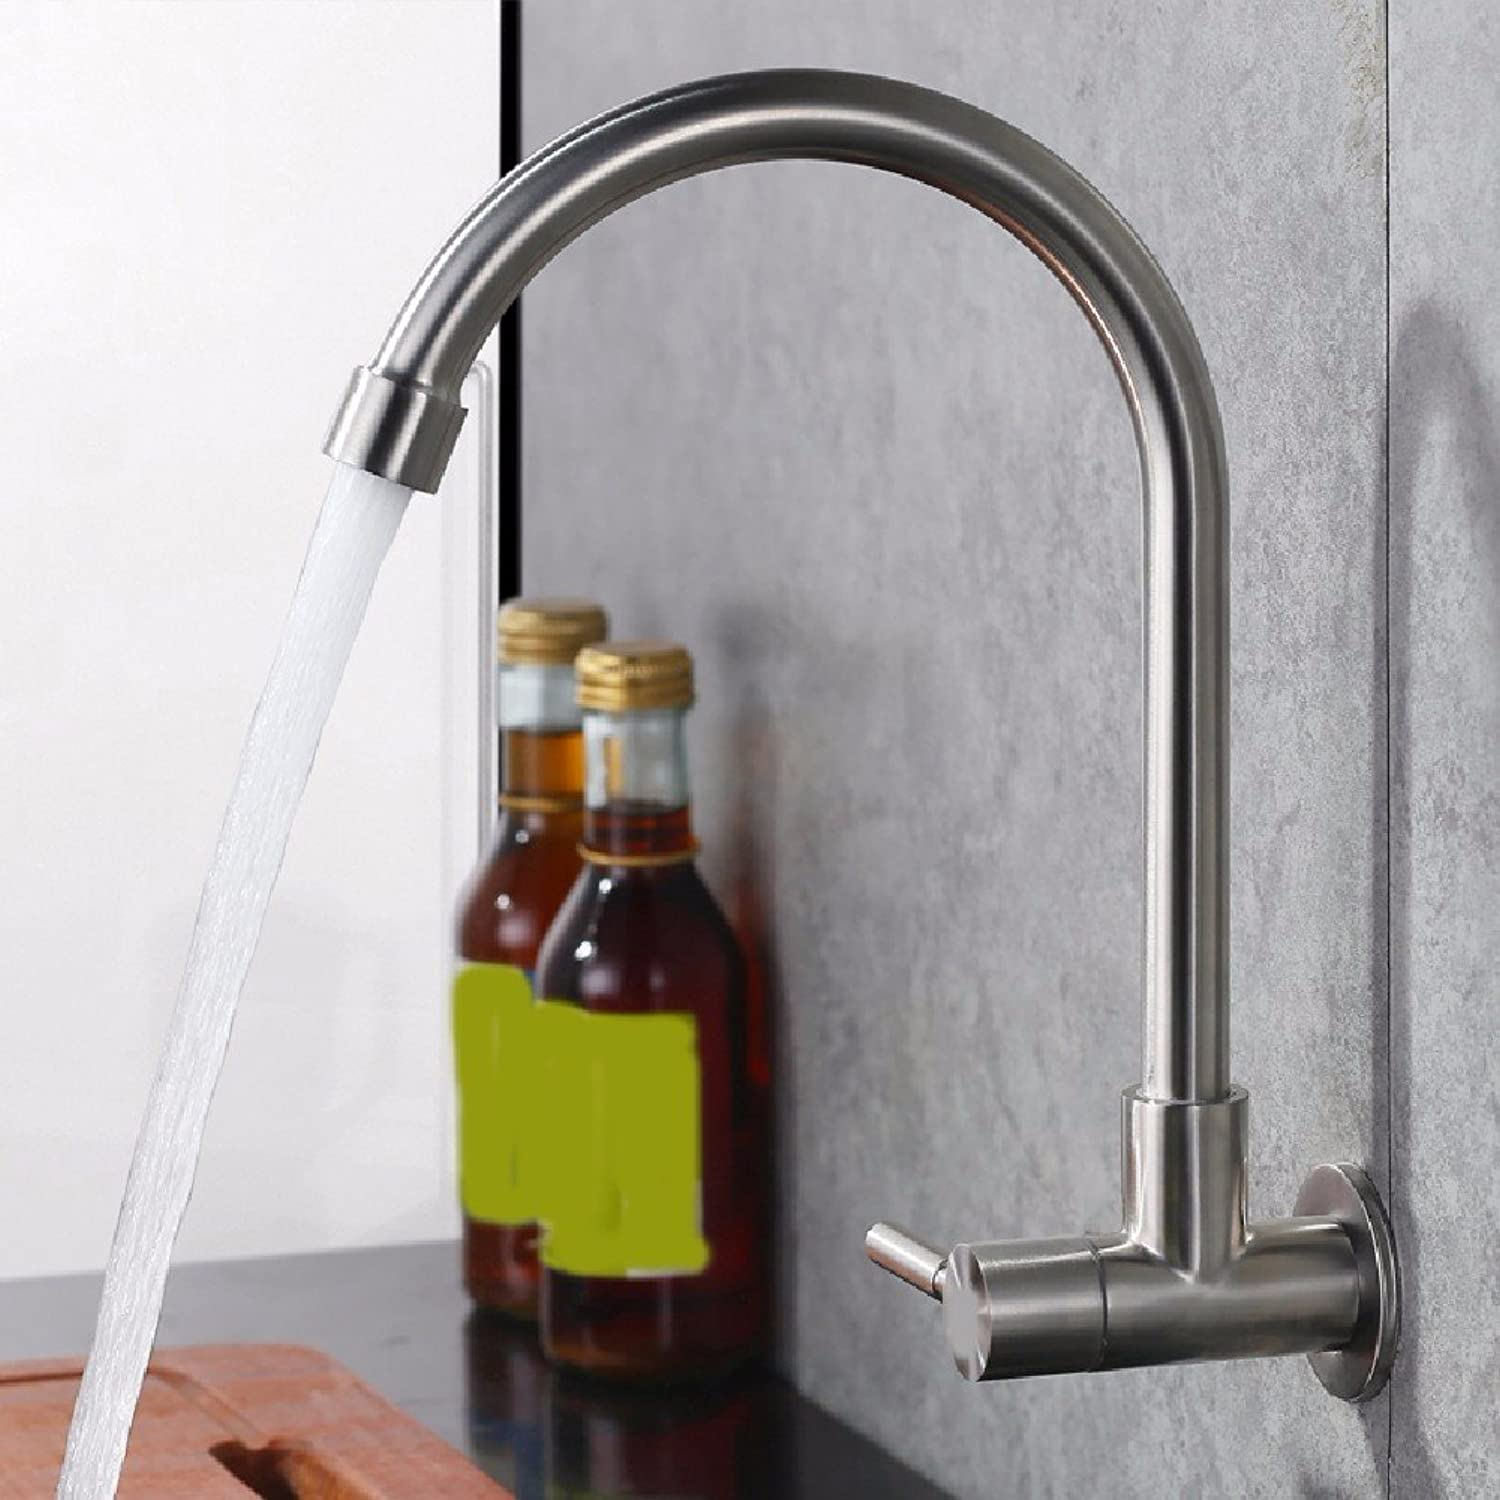 SHLONG Tap 304 Stainless Steel Wall-Mounted Single Cold Kitchen Faucet Balcony Mop Pool Faucet